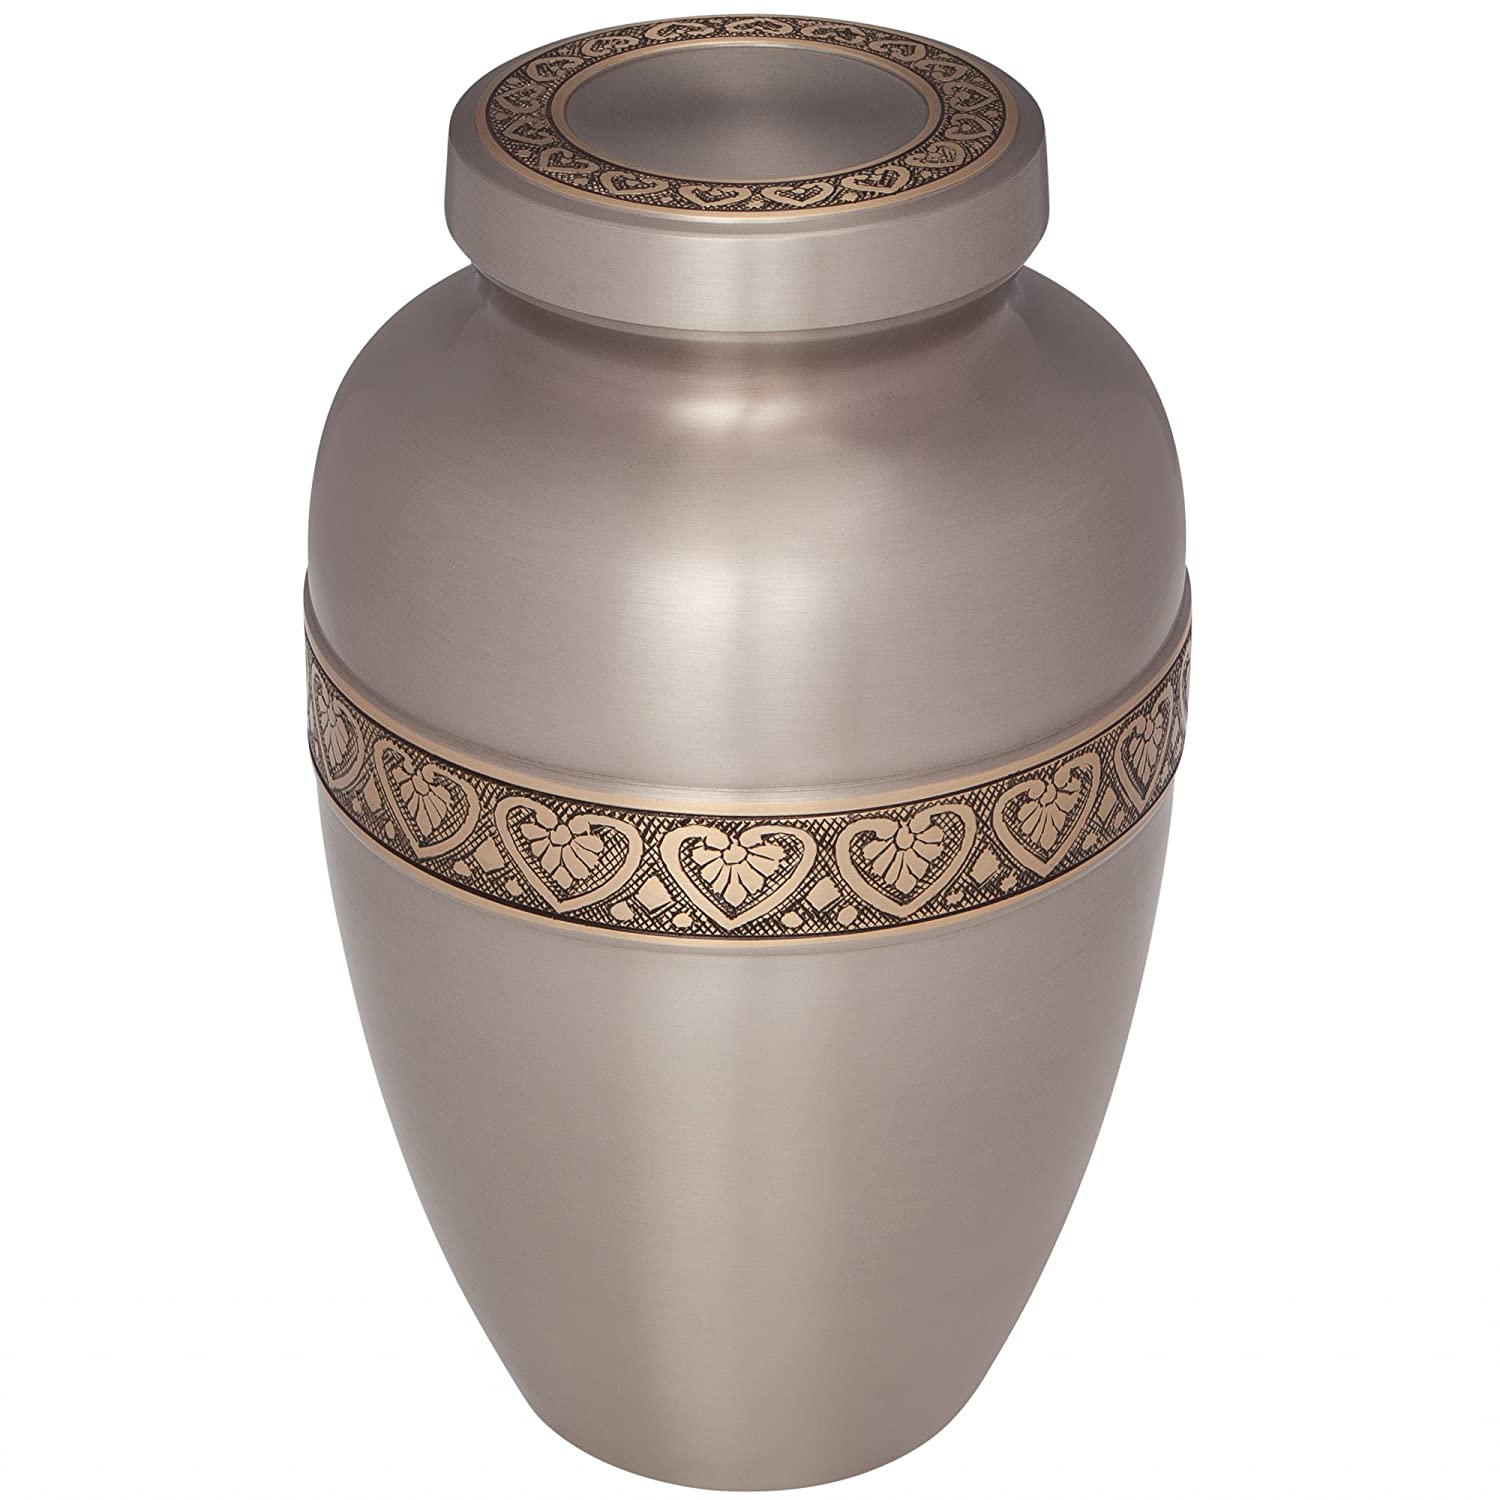 Suitable for Cemetery Burial or Niche Large Size fits remains of Adults up to 200 lbs Hand Made in Brass Silver Funeral Urn by Liliane Memorials Cremation Urn for Human Ashes Coeur Model